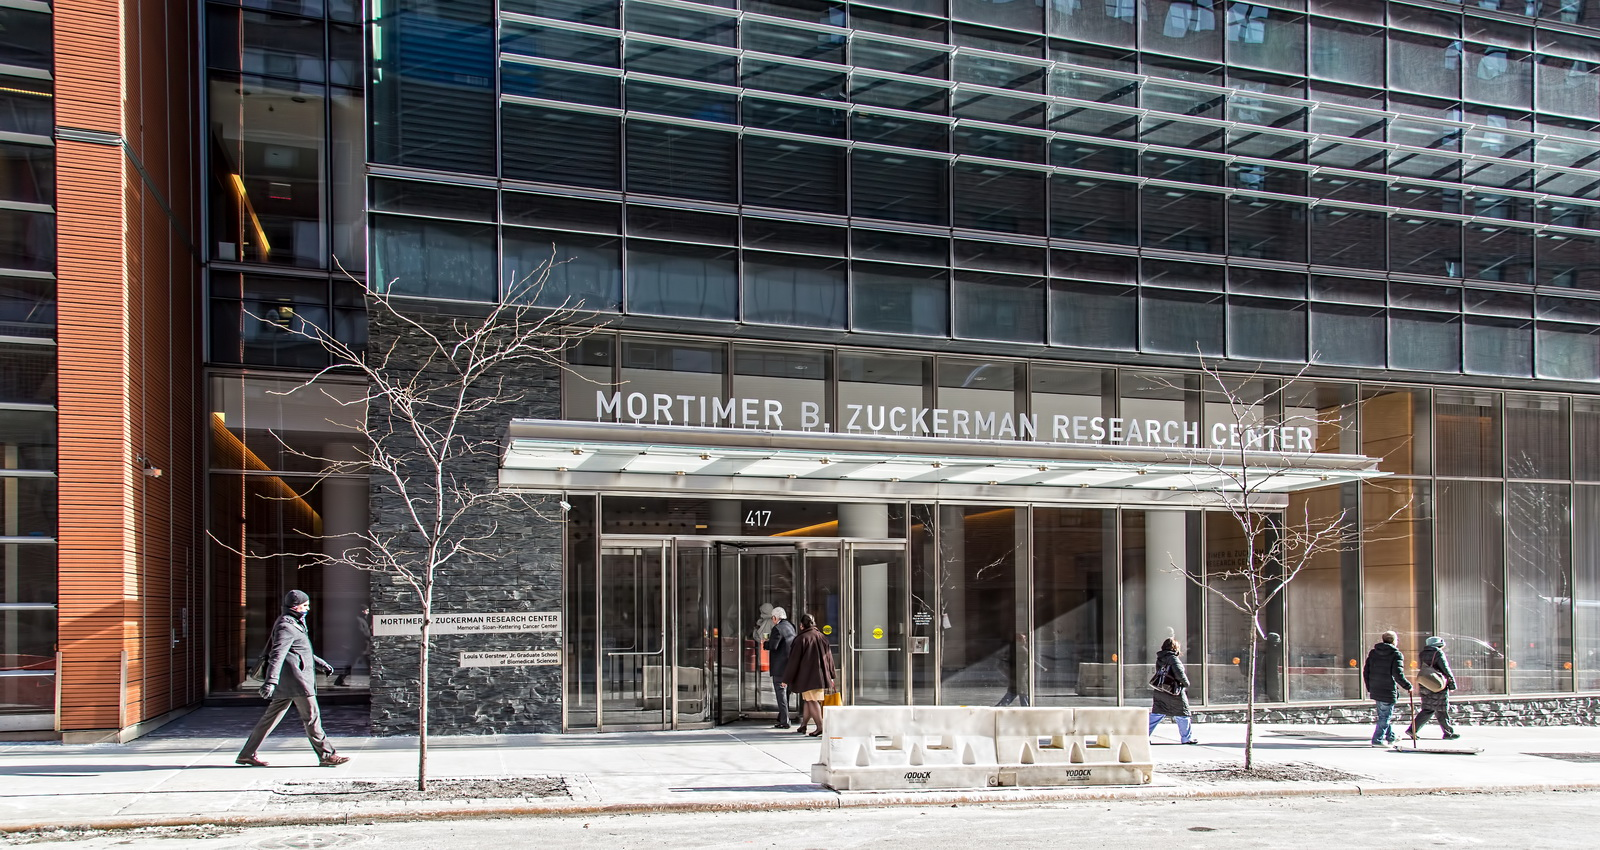 New York Architecture Photos Memorial Sloan Kettering